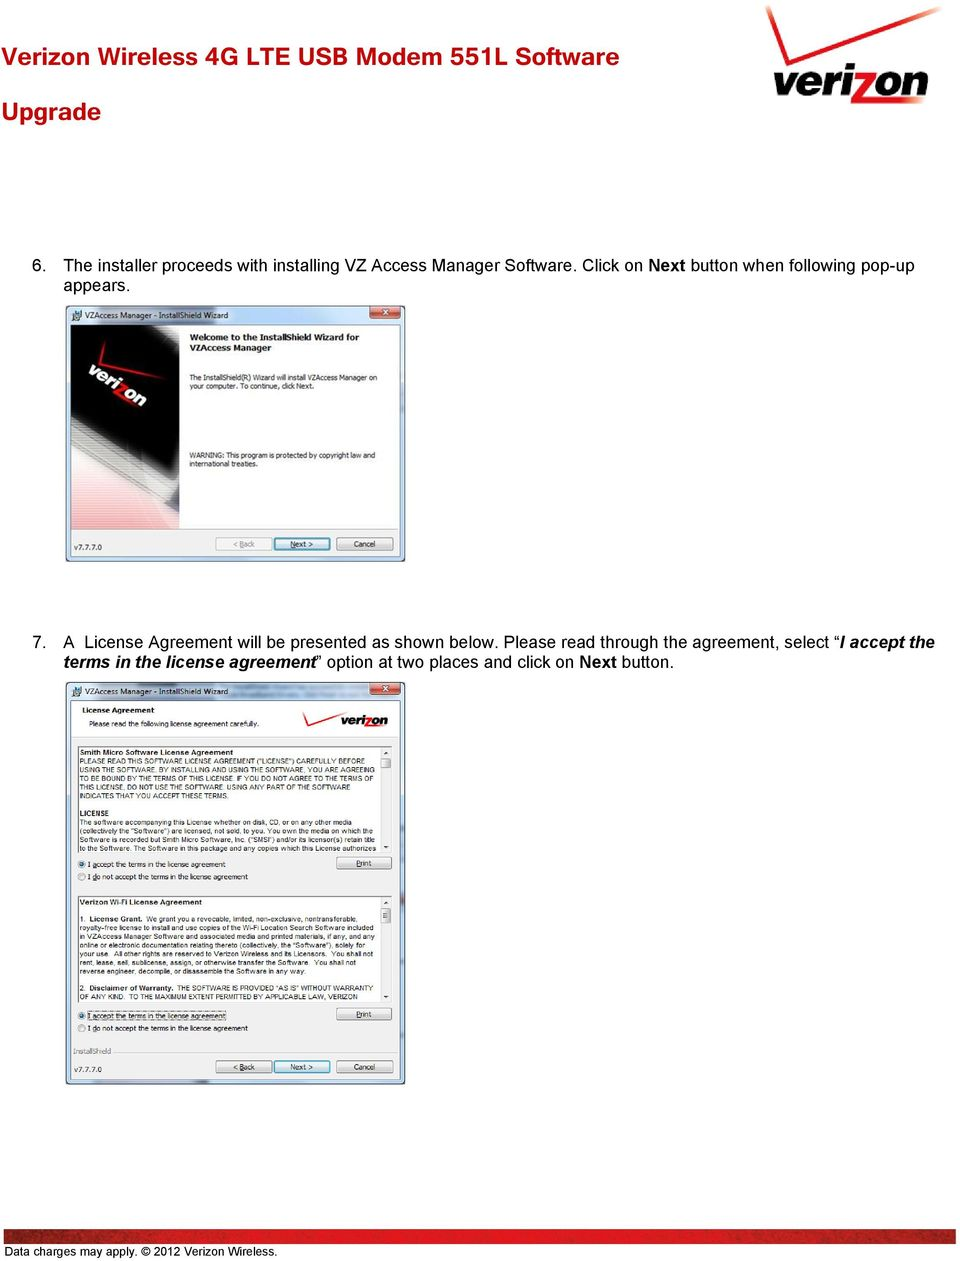 A License Agreement will be presented as shown below.